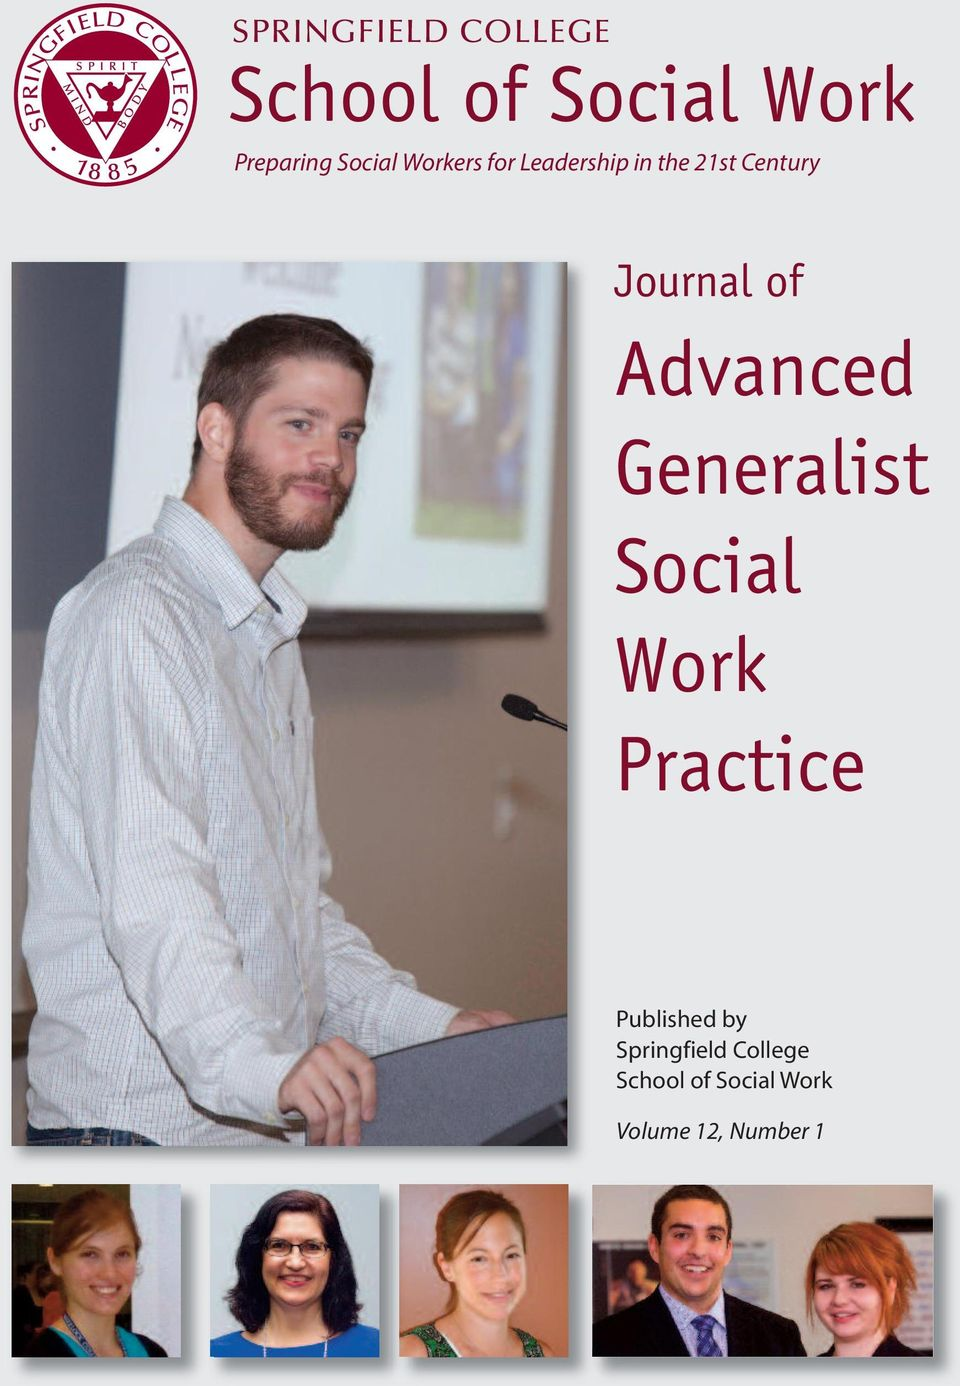 Journal of Advanced Generalist Social Work Practice